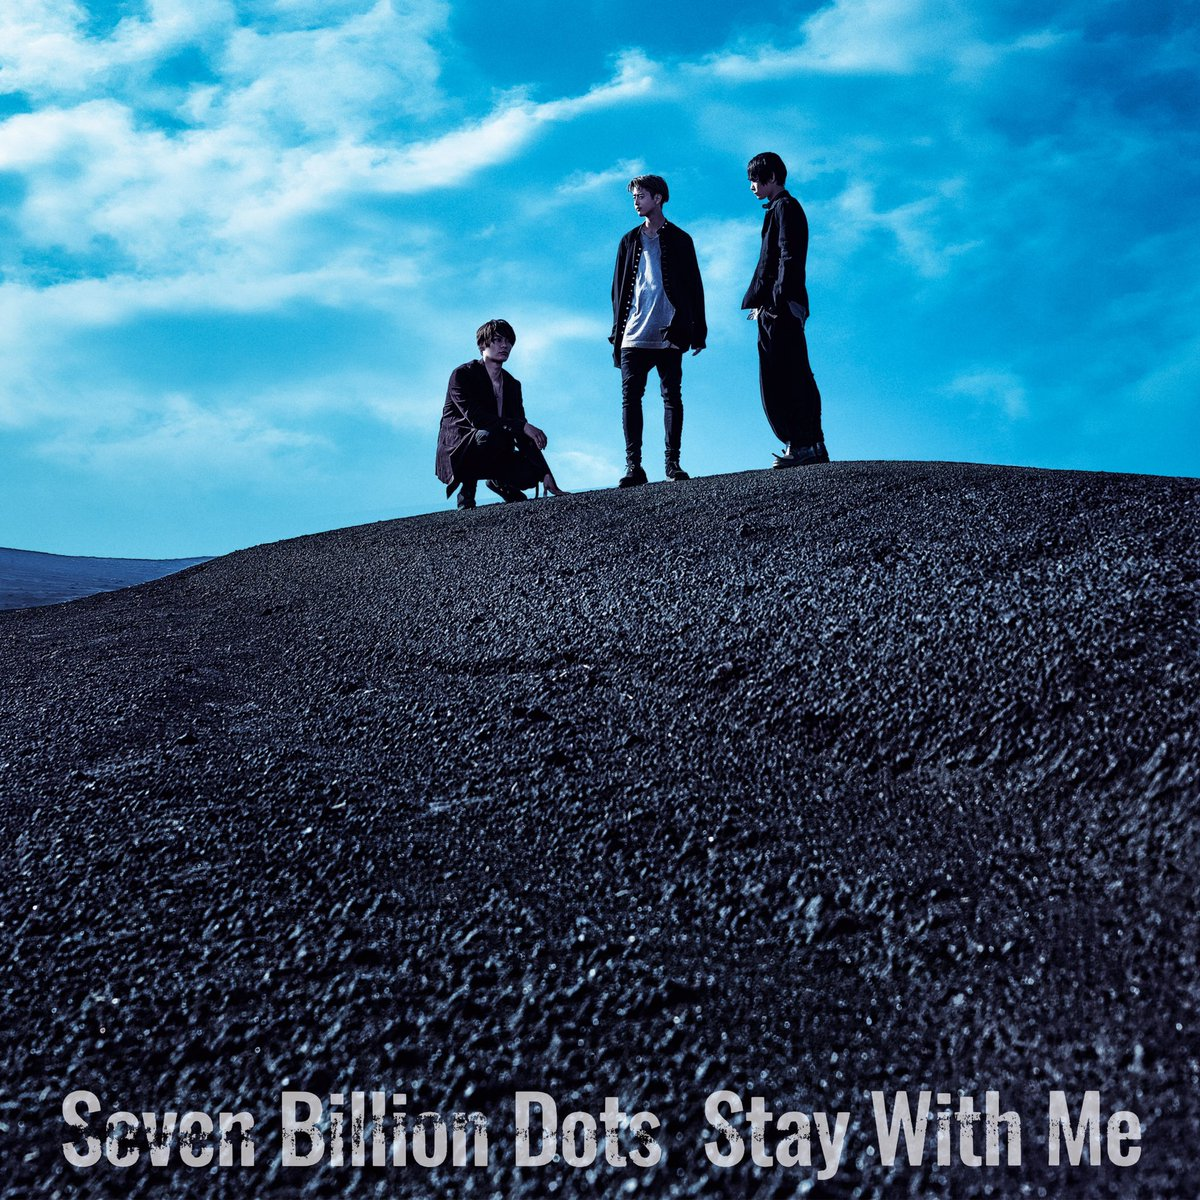 『Seven Billion DotsStay With Me』収録の『Stay With Me』ジャケット